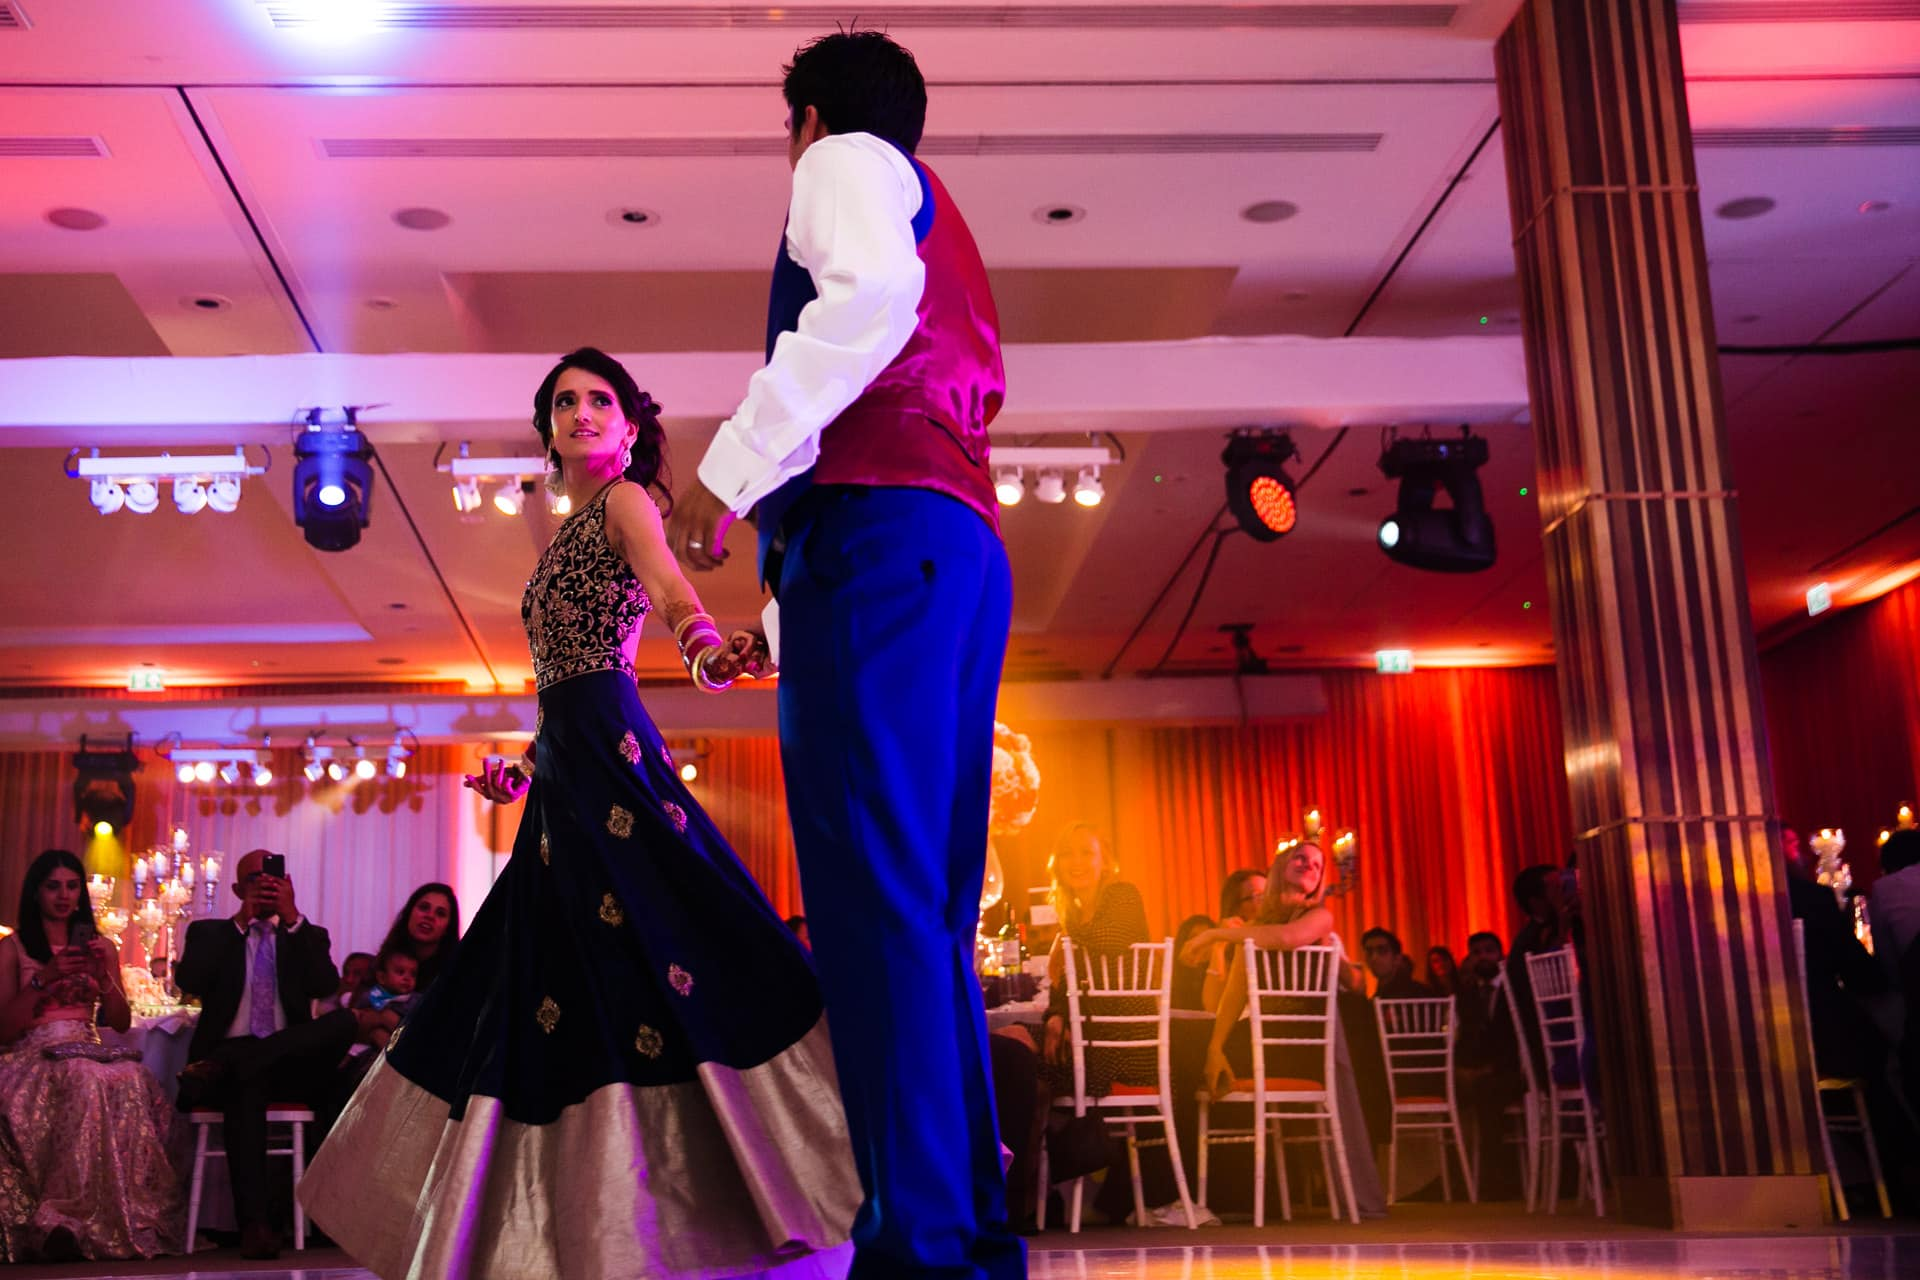 First Dance by Wedding couple